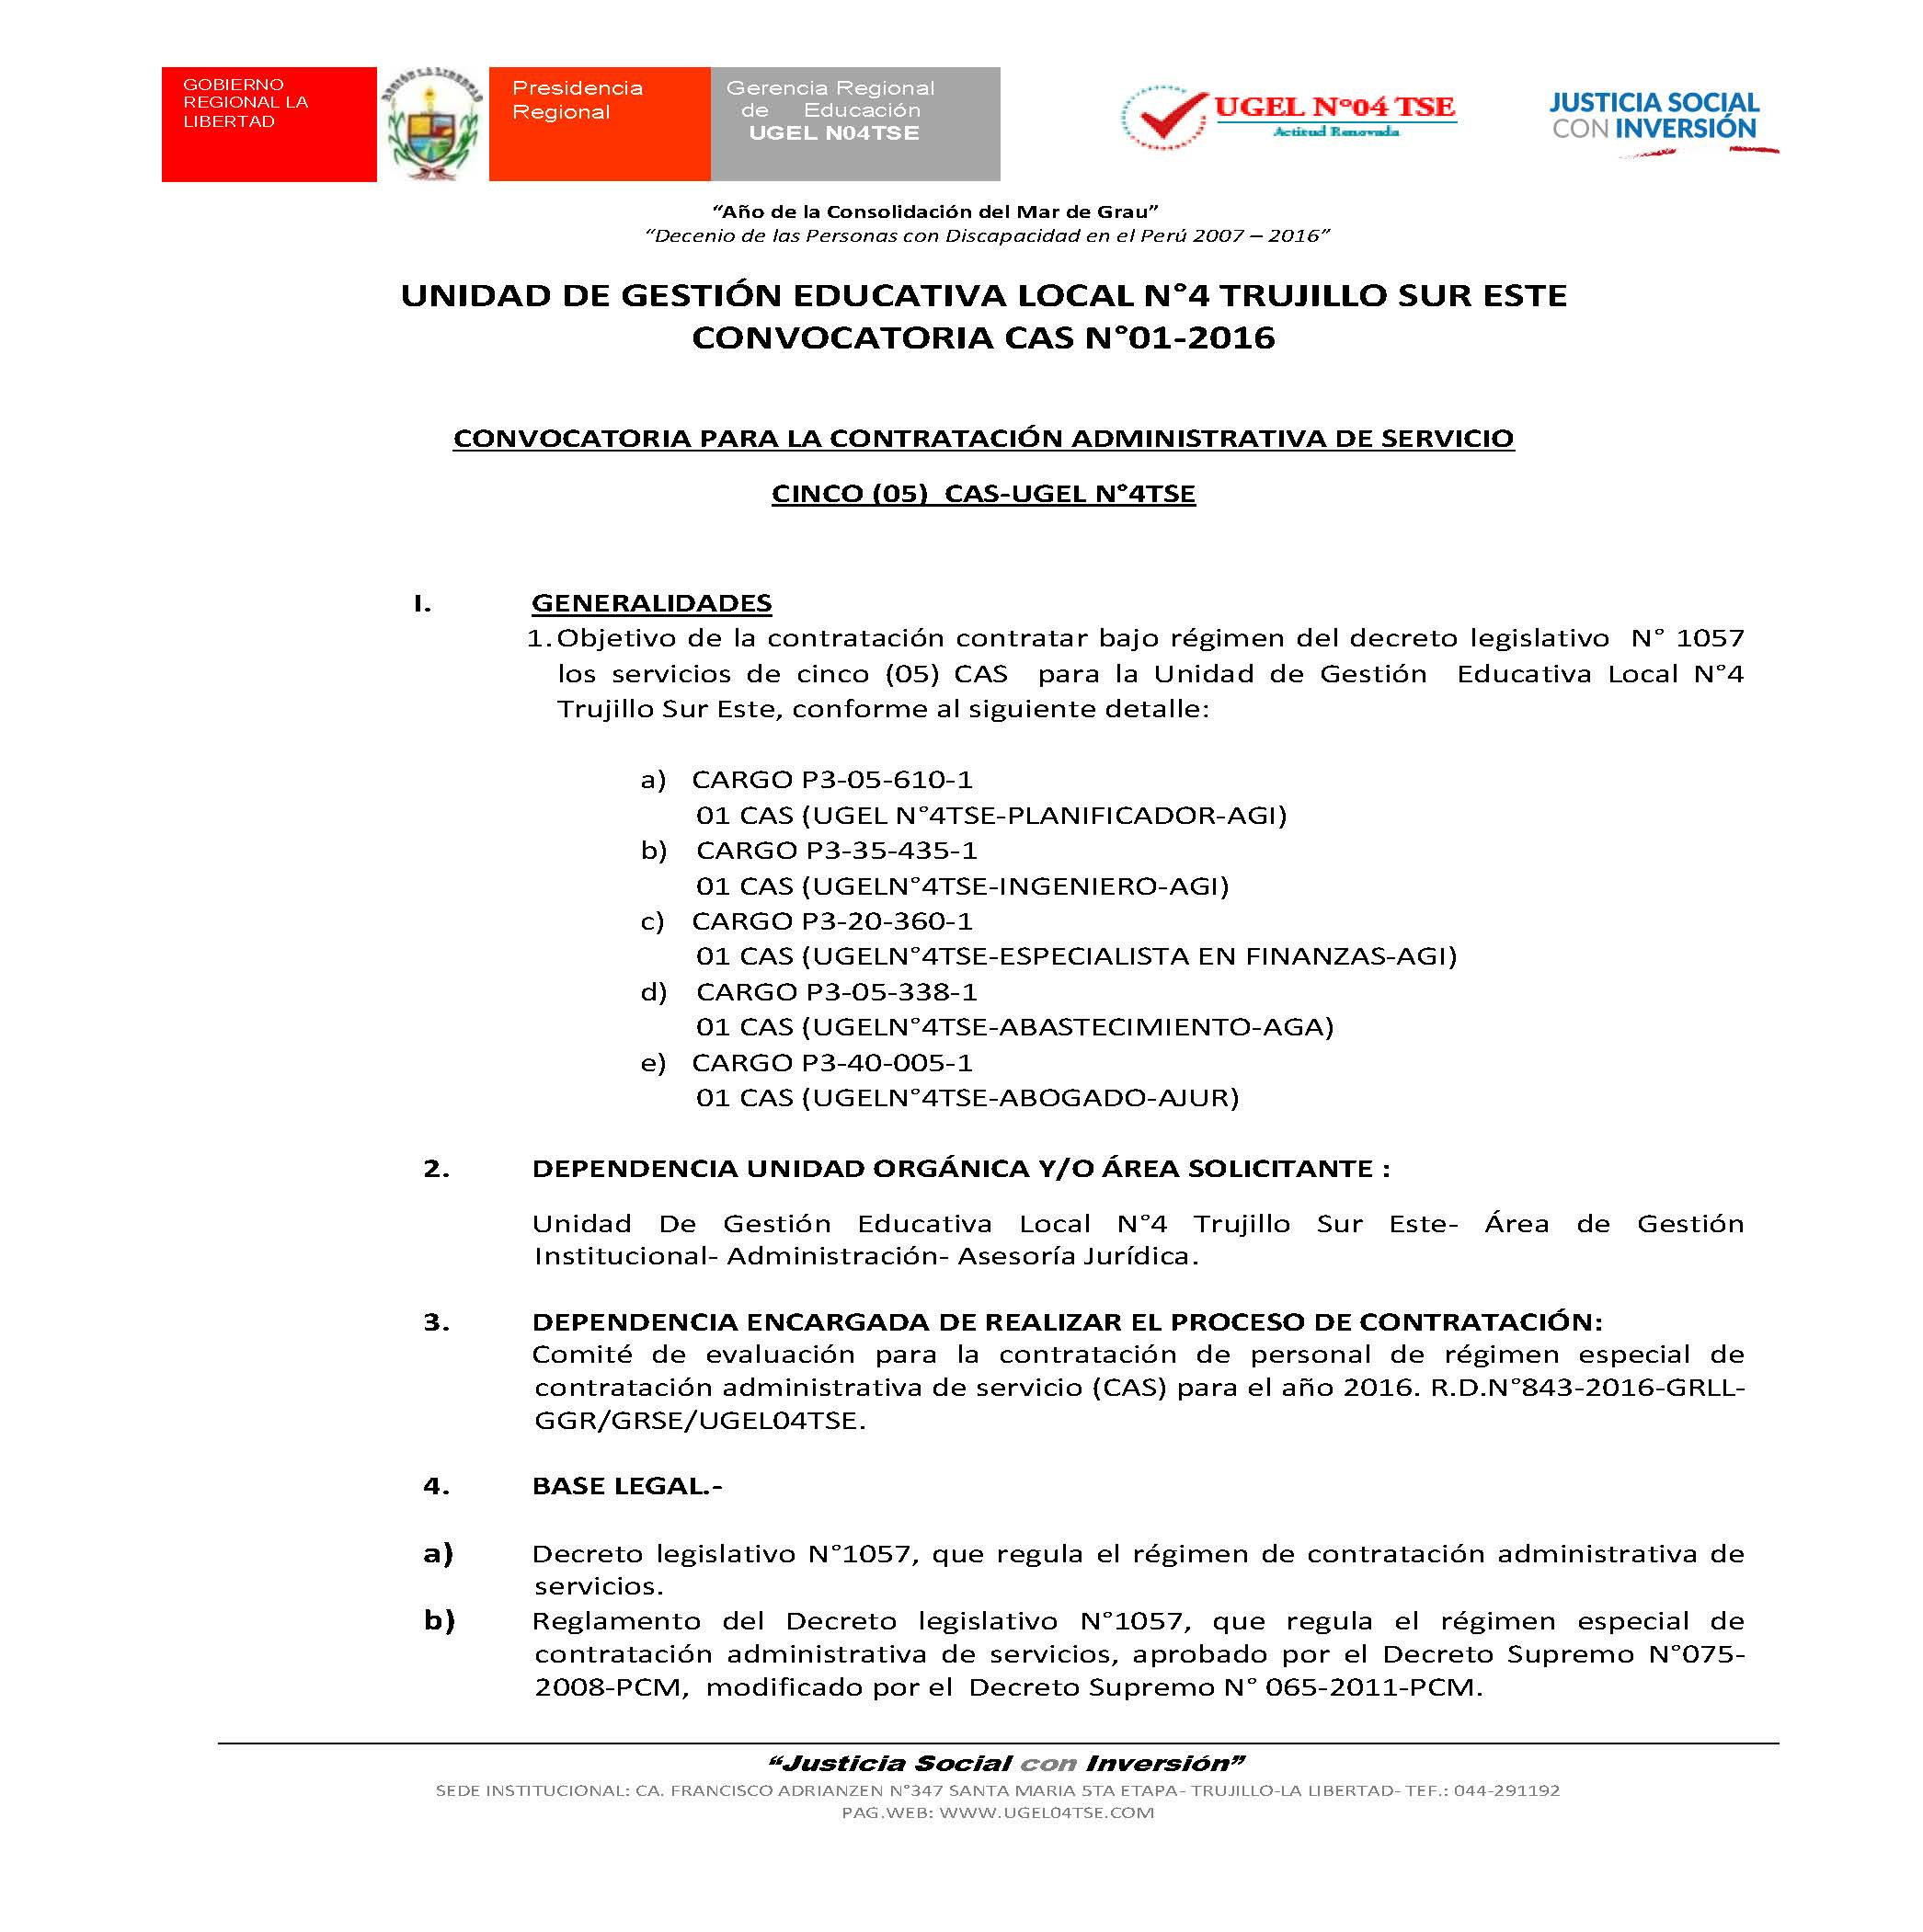 Convocatoria cas n 01 2016 convocatoria para la for Convocatoria de docentes 2016